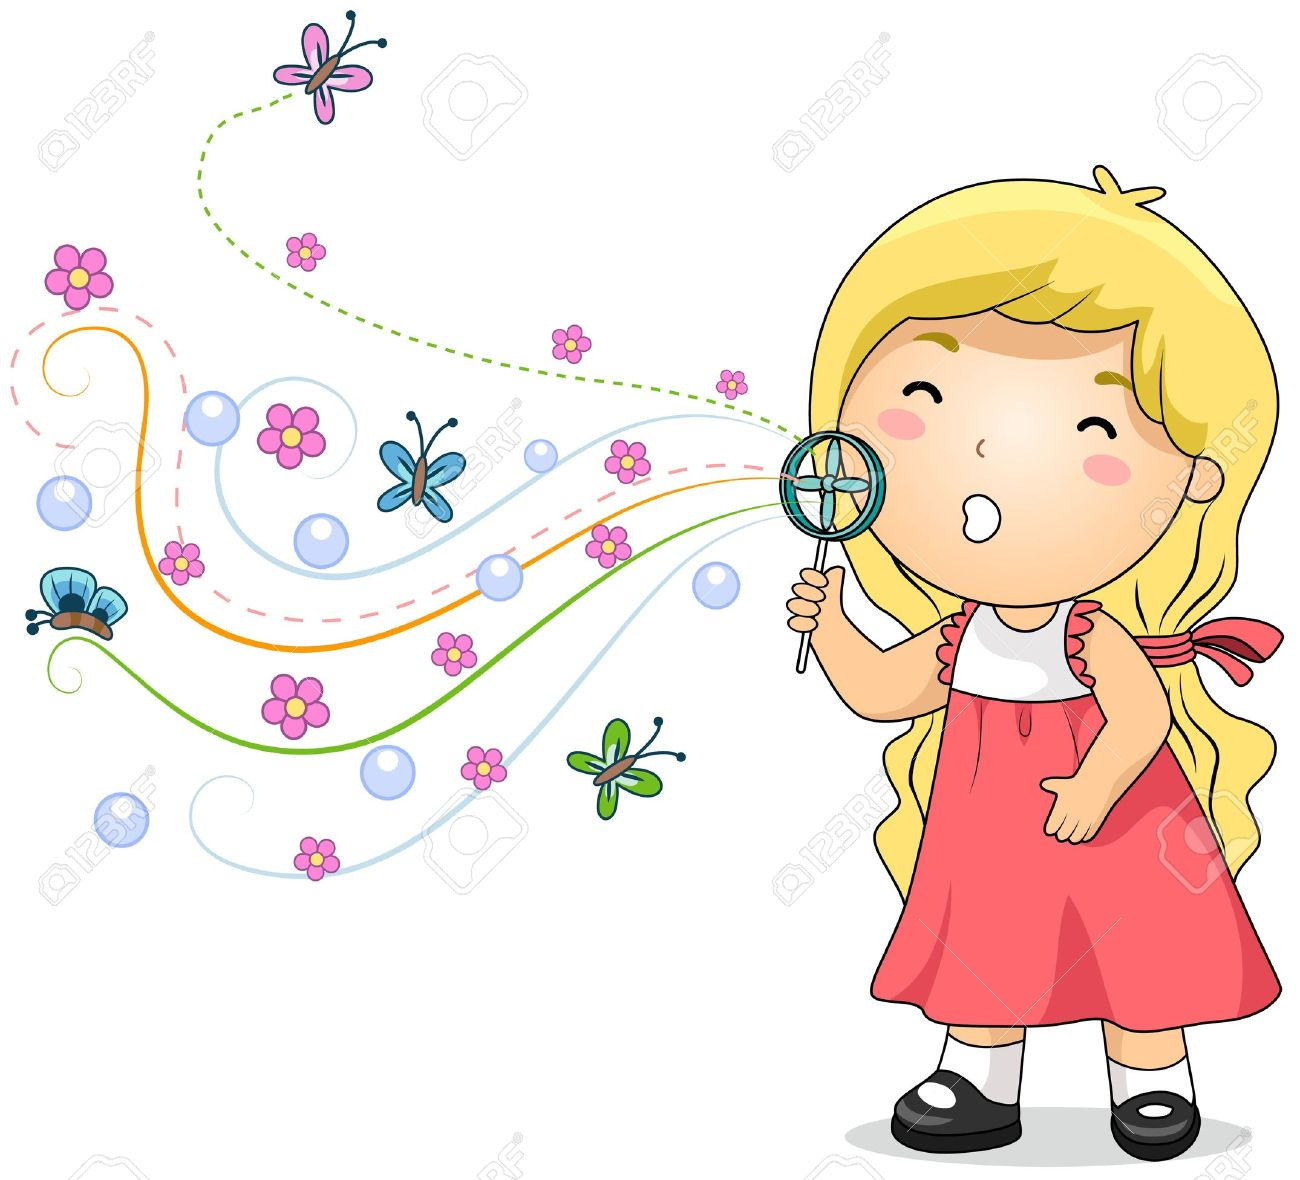 Illustration Of A Little Girl Blowing Bubbles Stock Photo, Picture.